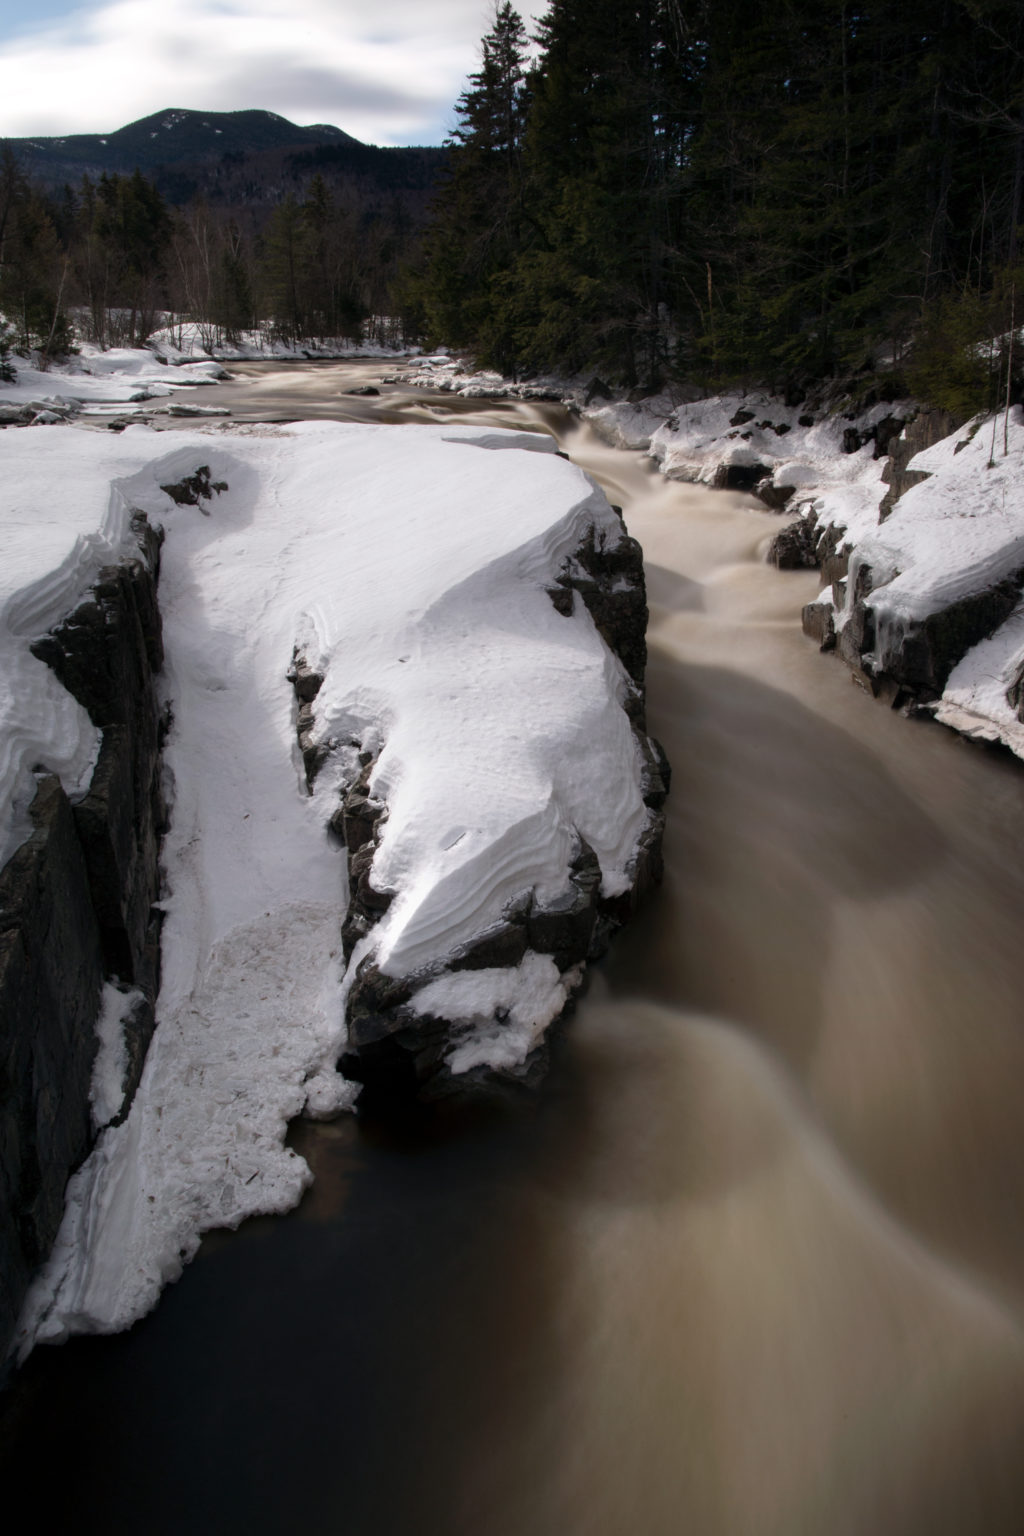 River Moving Through Snow-Covered Rocks